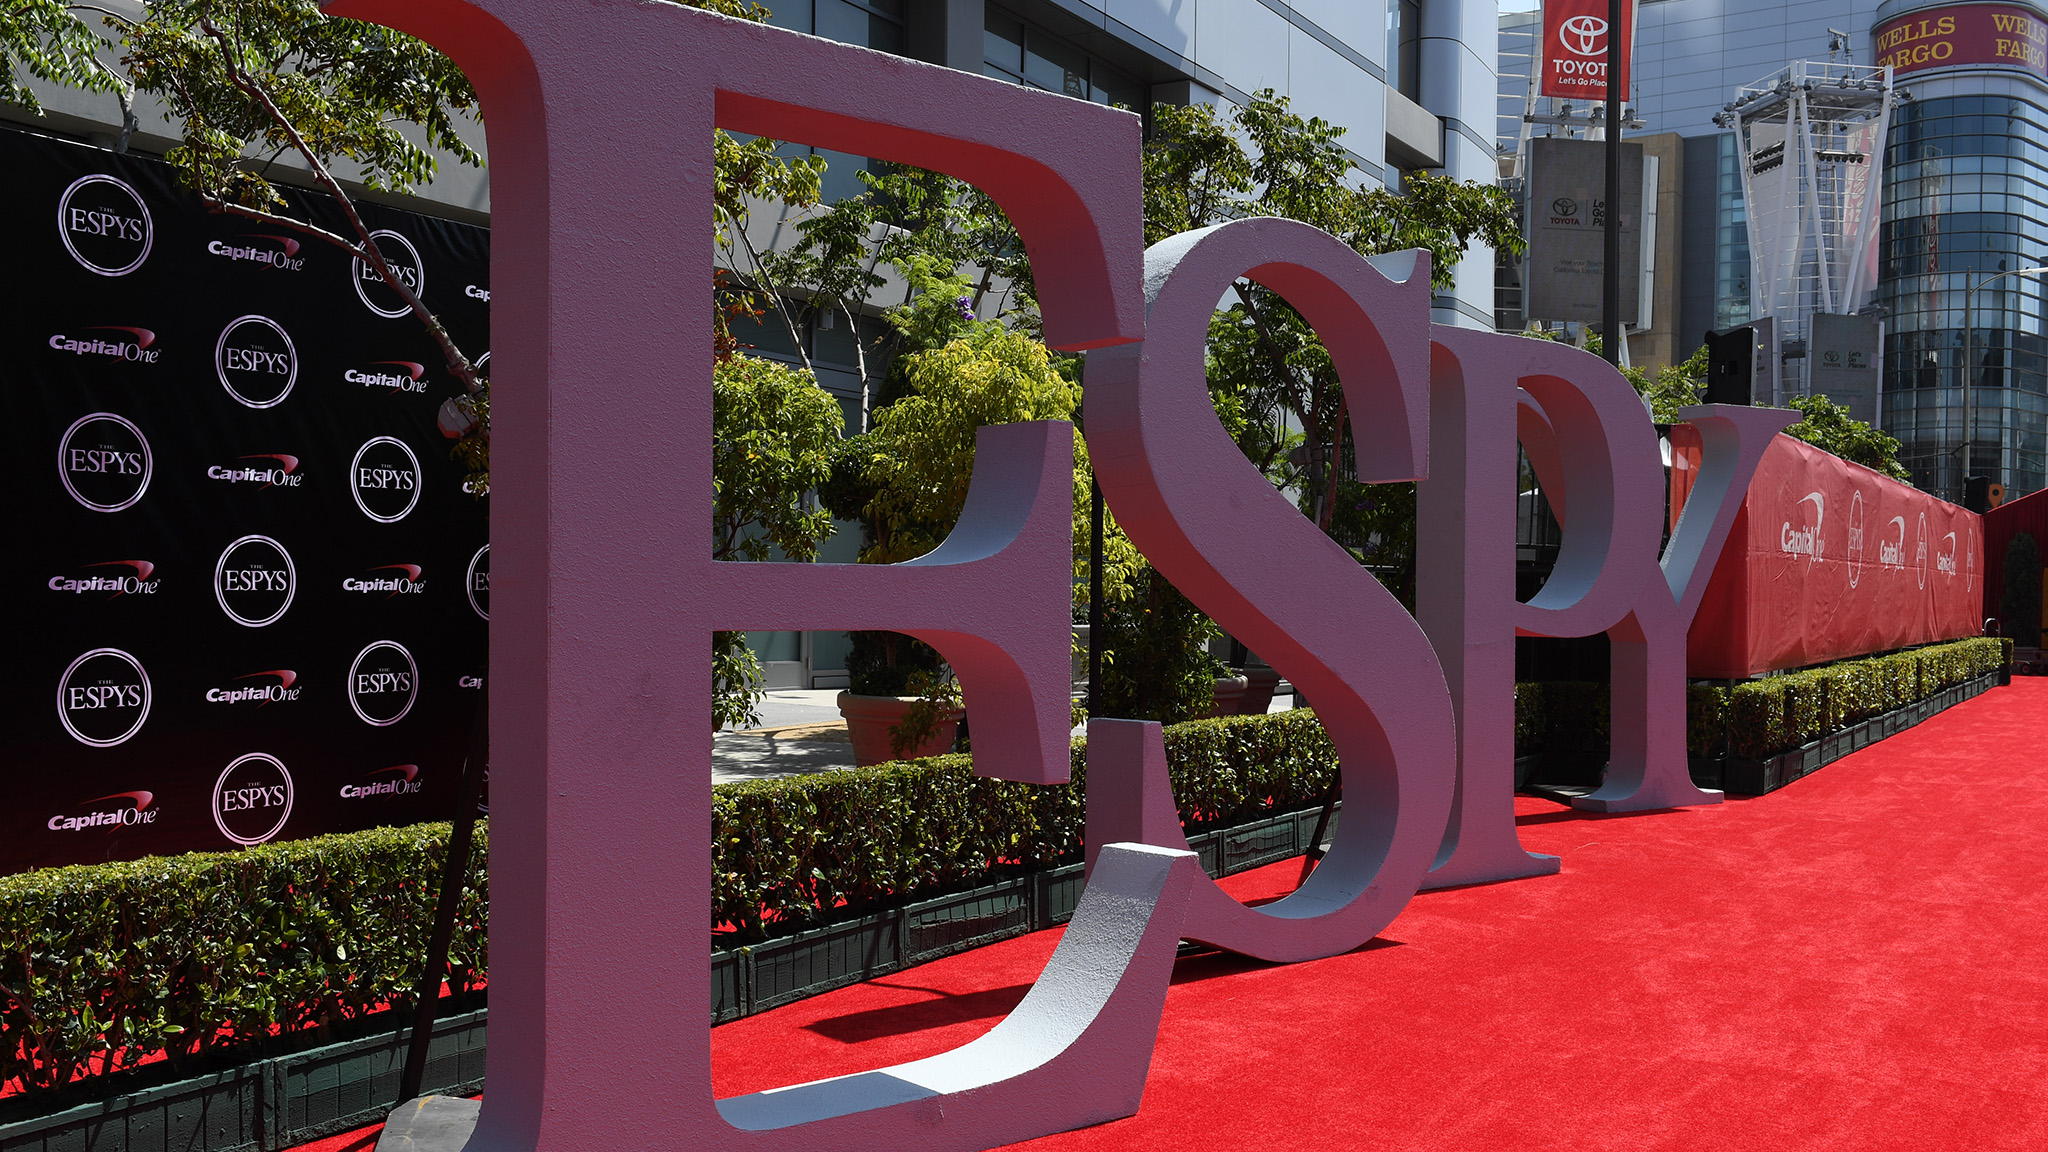 ESPYs Day is here!